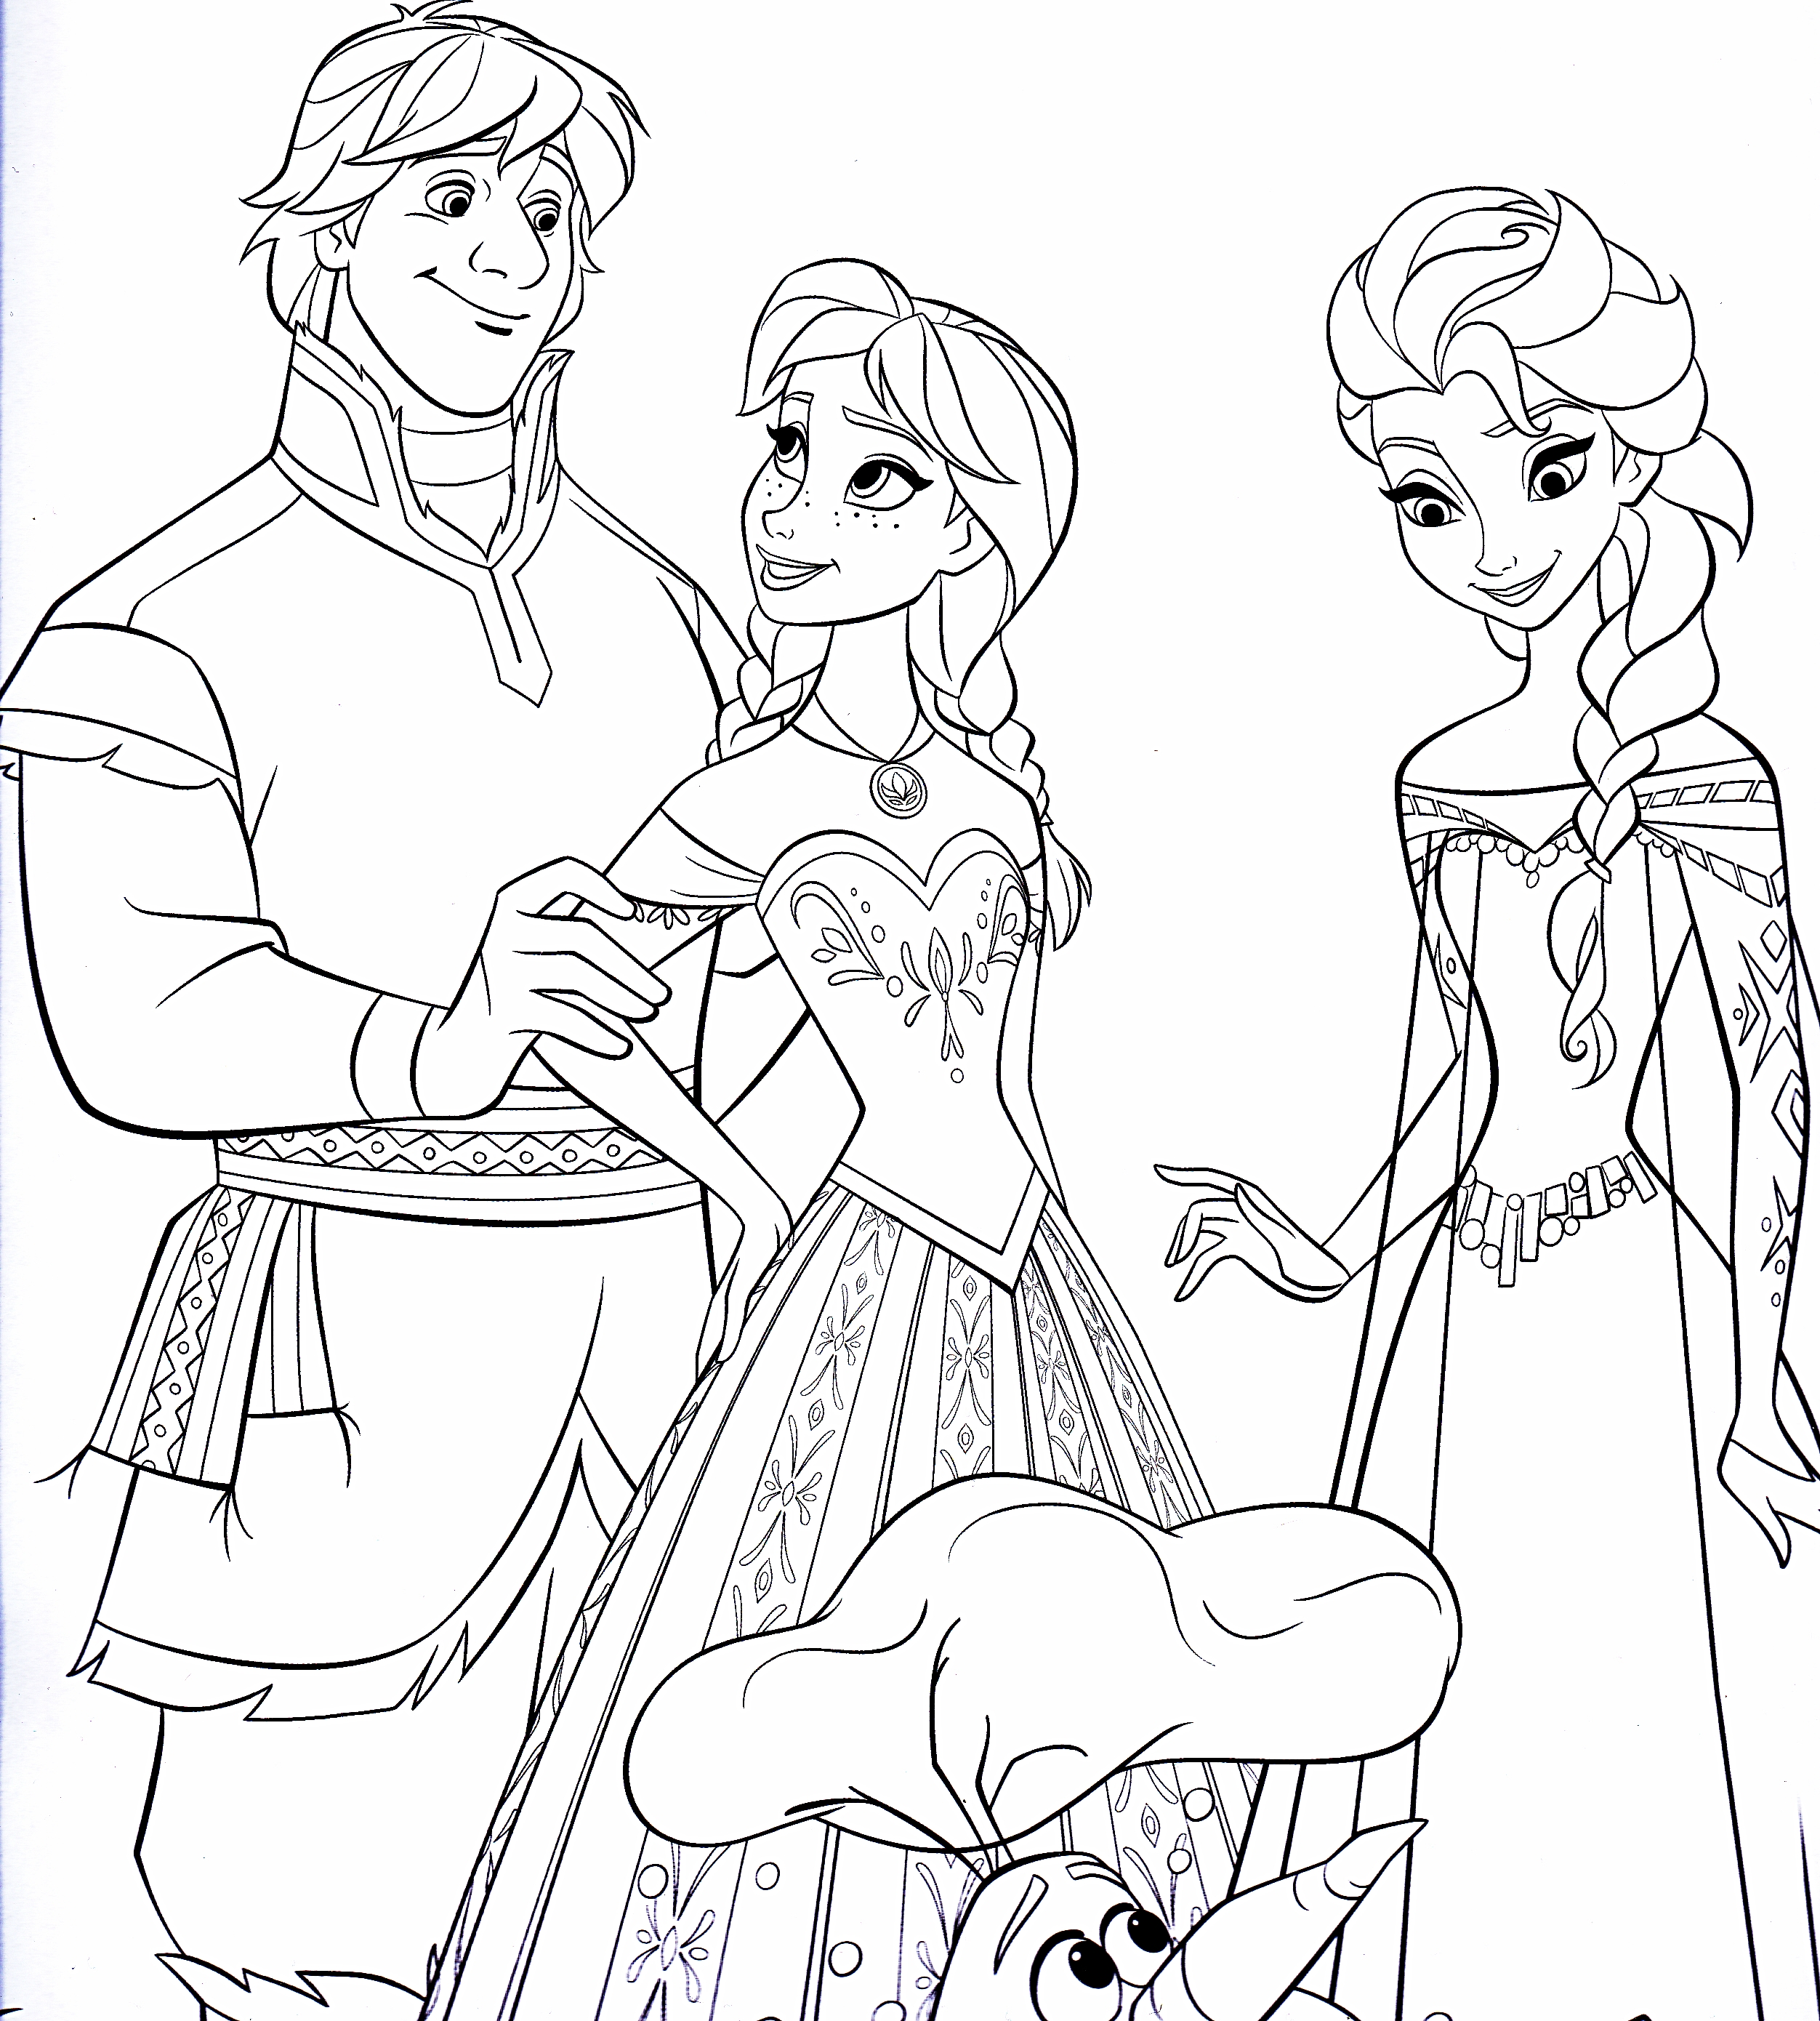 Walt Дисней Coloring Pages - Kristoff Bjorgman, Princess Anna, Queen Elsa & Olaf